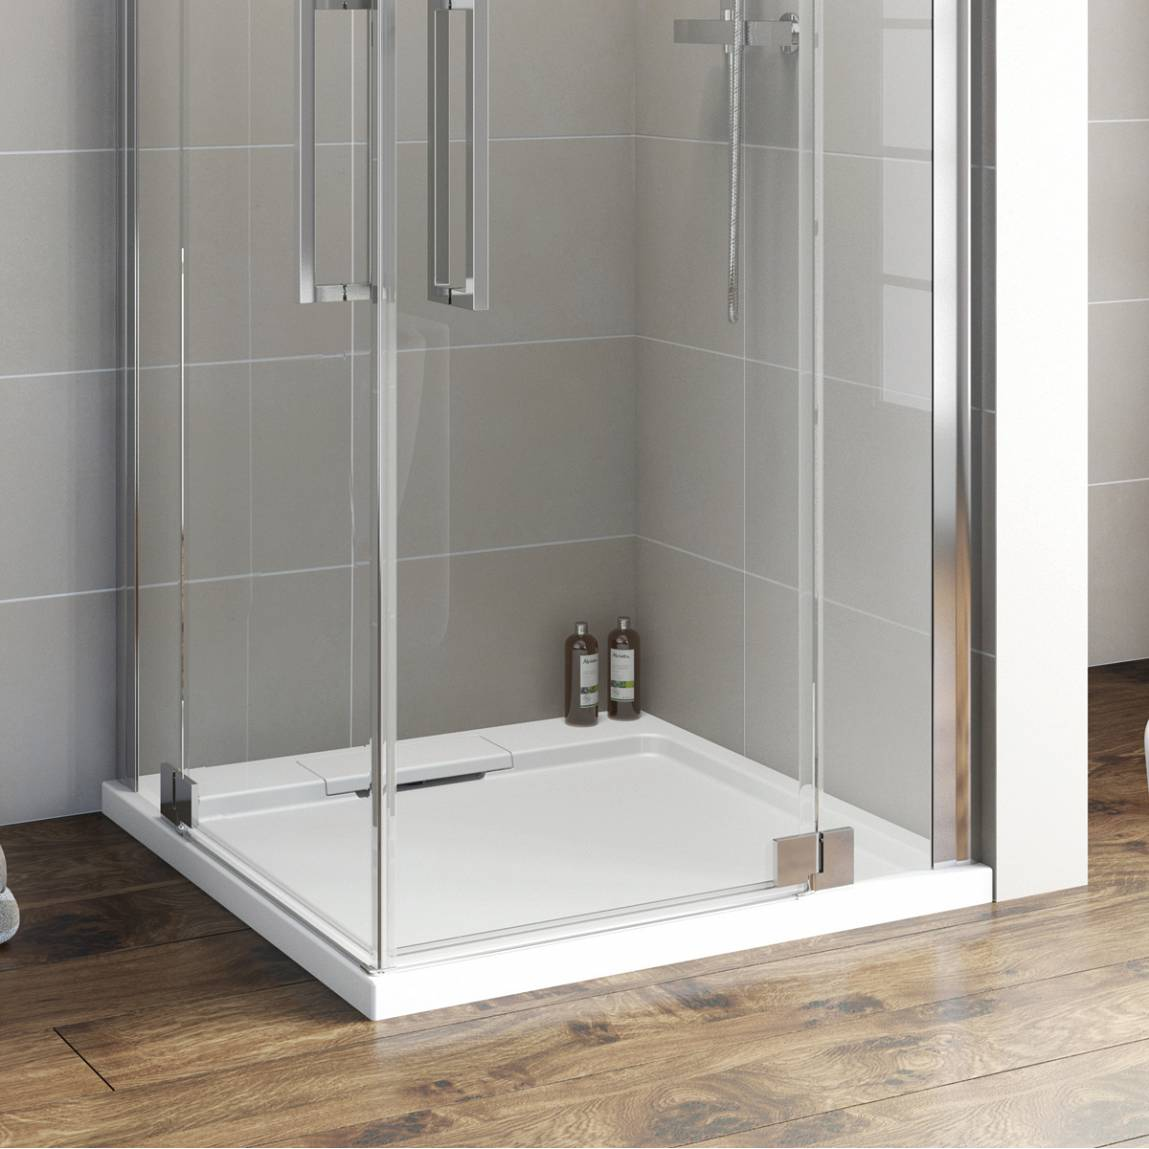 Shower tray buying guide | VictoriaPlum.com